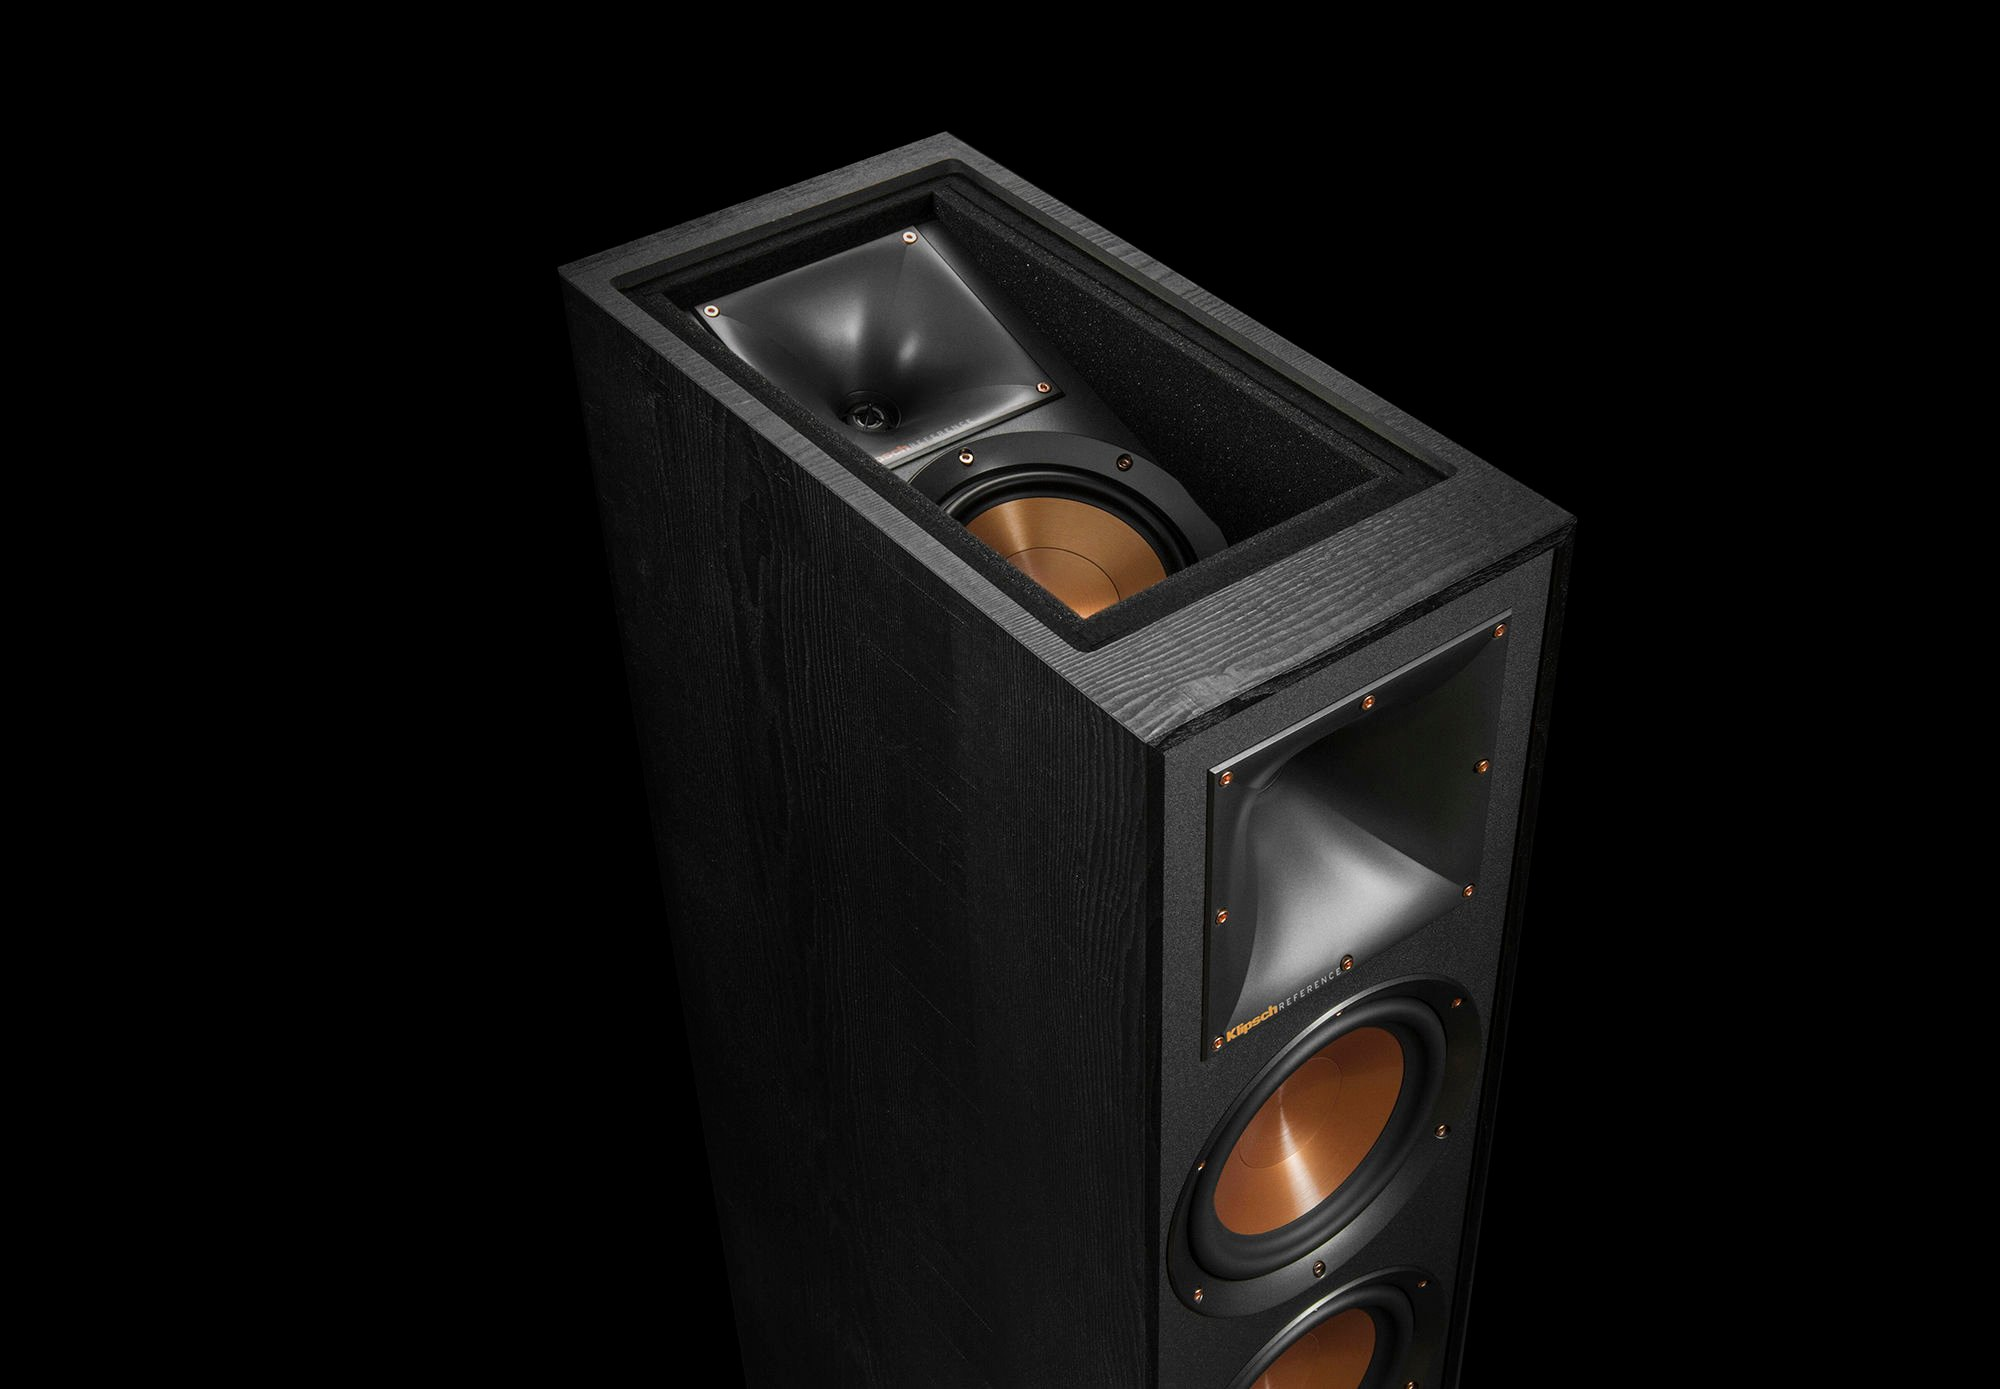 Top of the Klipsch floorstanding speaker